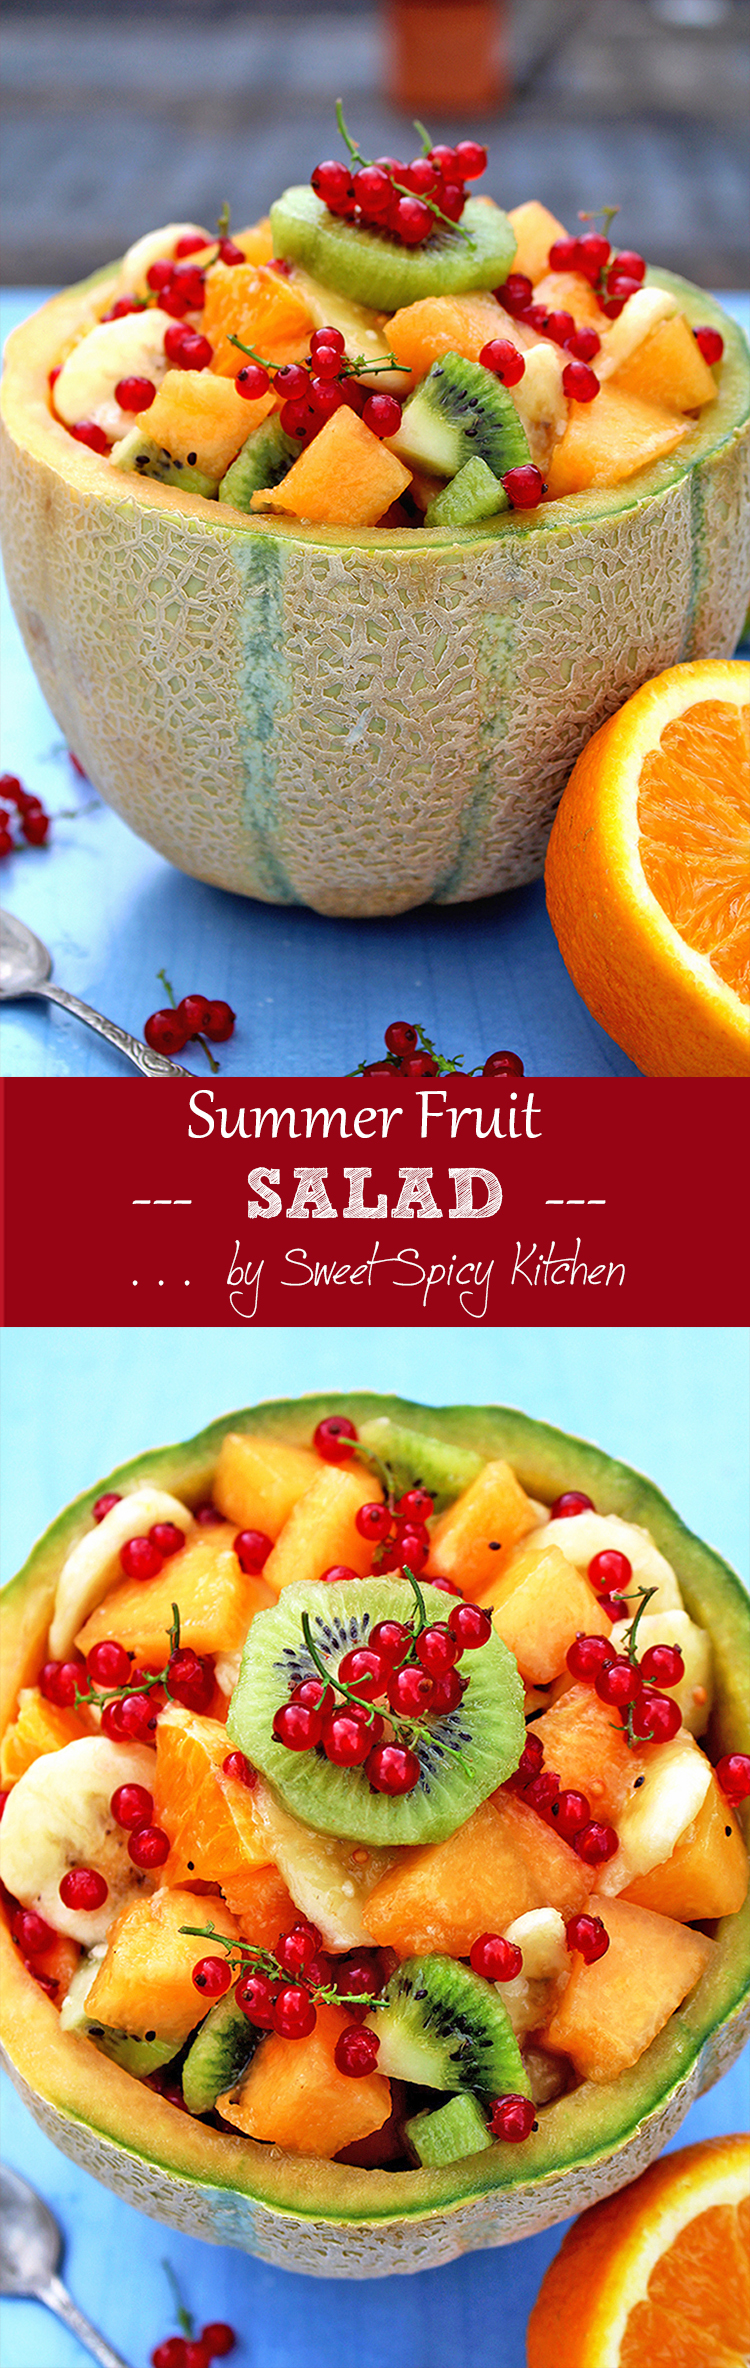 Untitled-18 Summer Fruit Salad